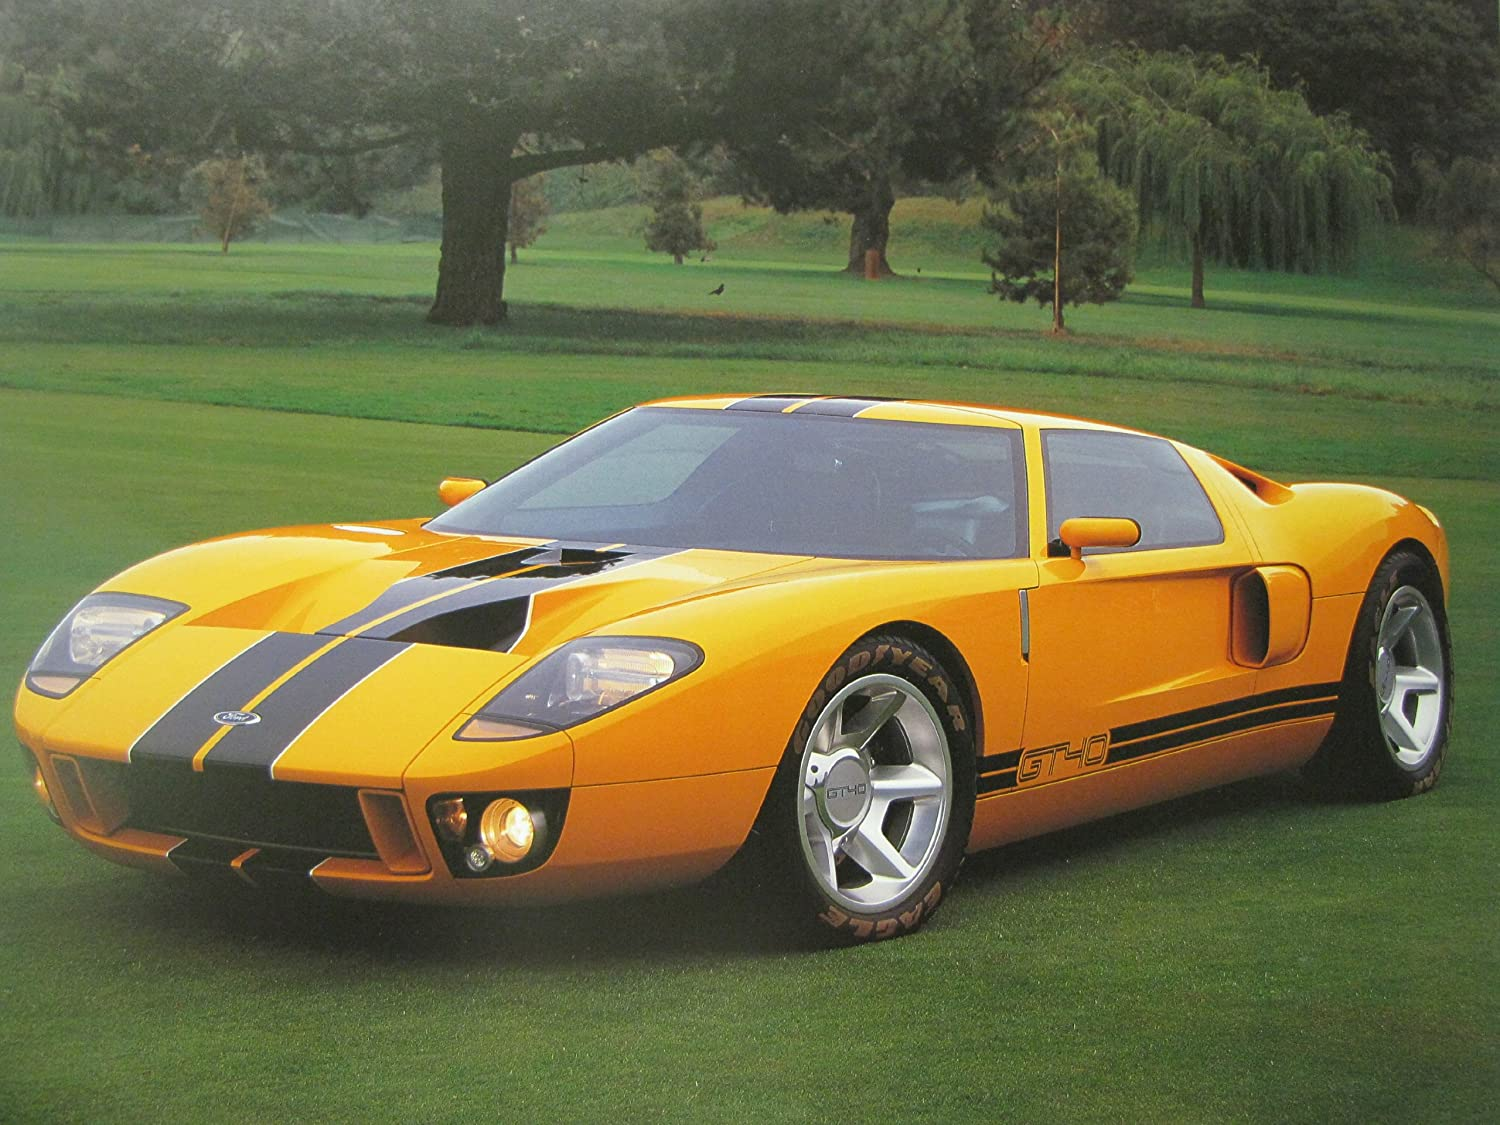 Amazon Com Racing Wall Decor Prototype Sports Ford Gt Car Art Print Poster X Home Kitchen